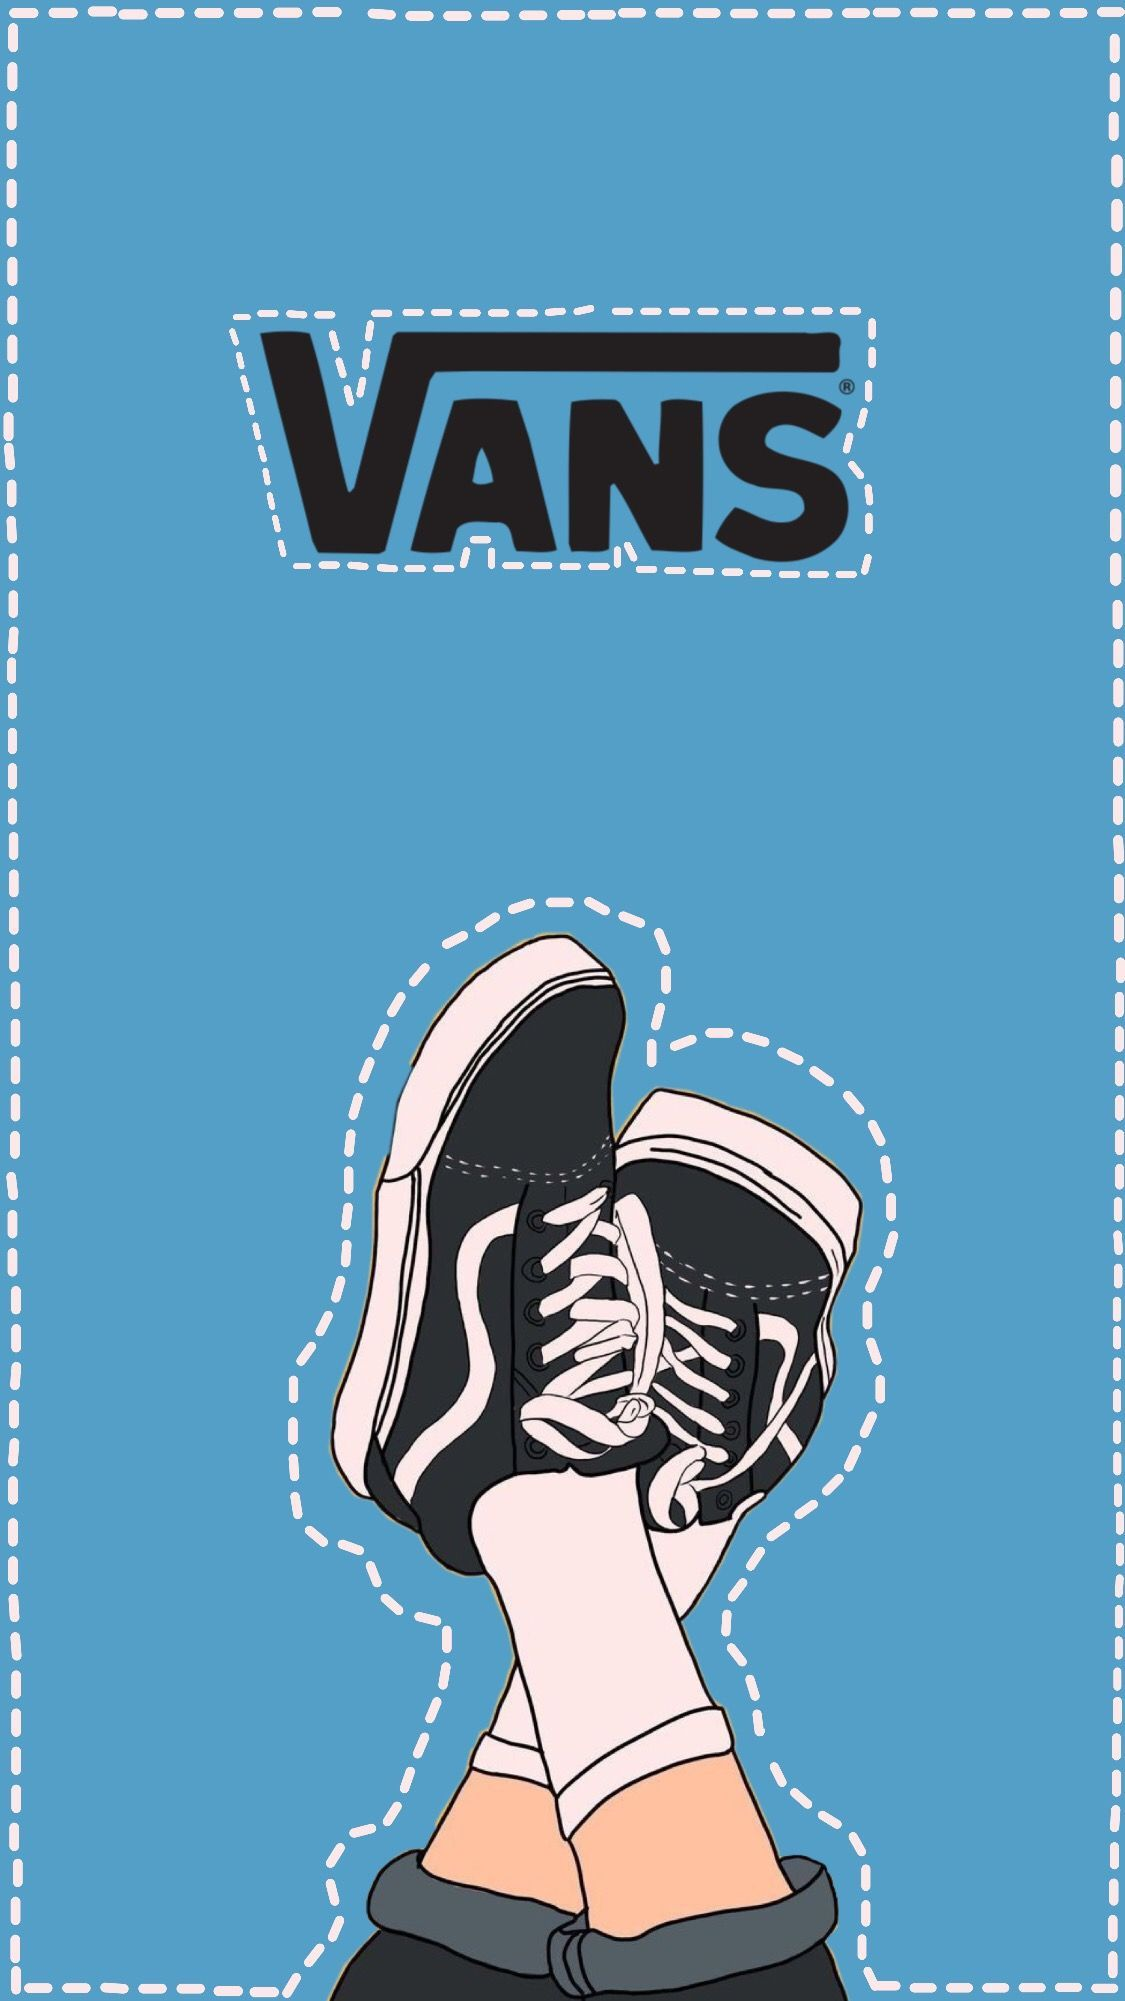 Download Latest Vans Wallpaper for Android Phone This